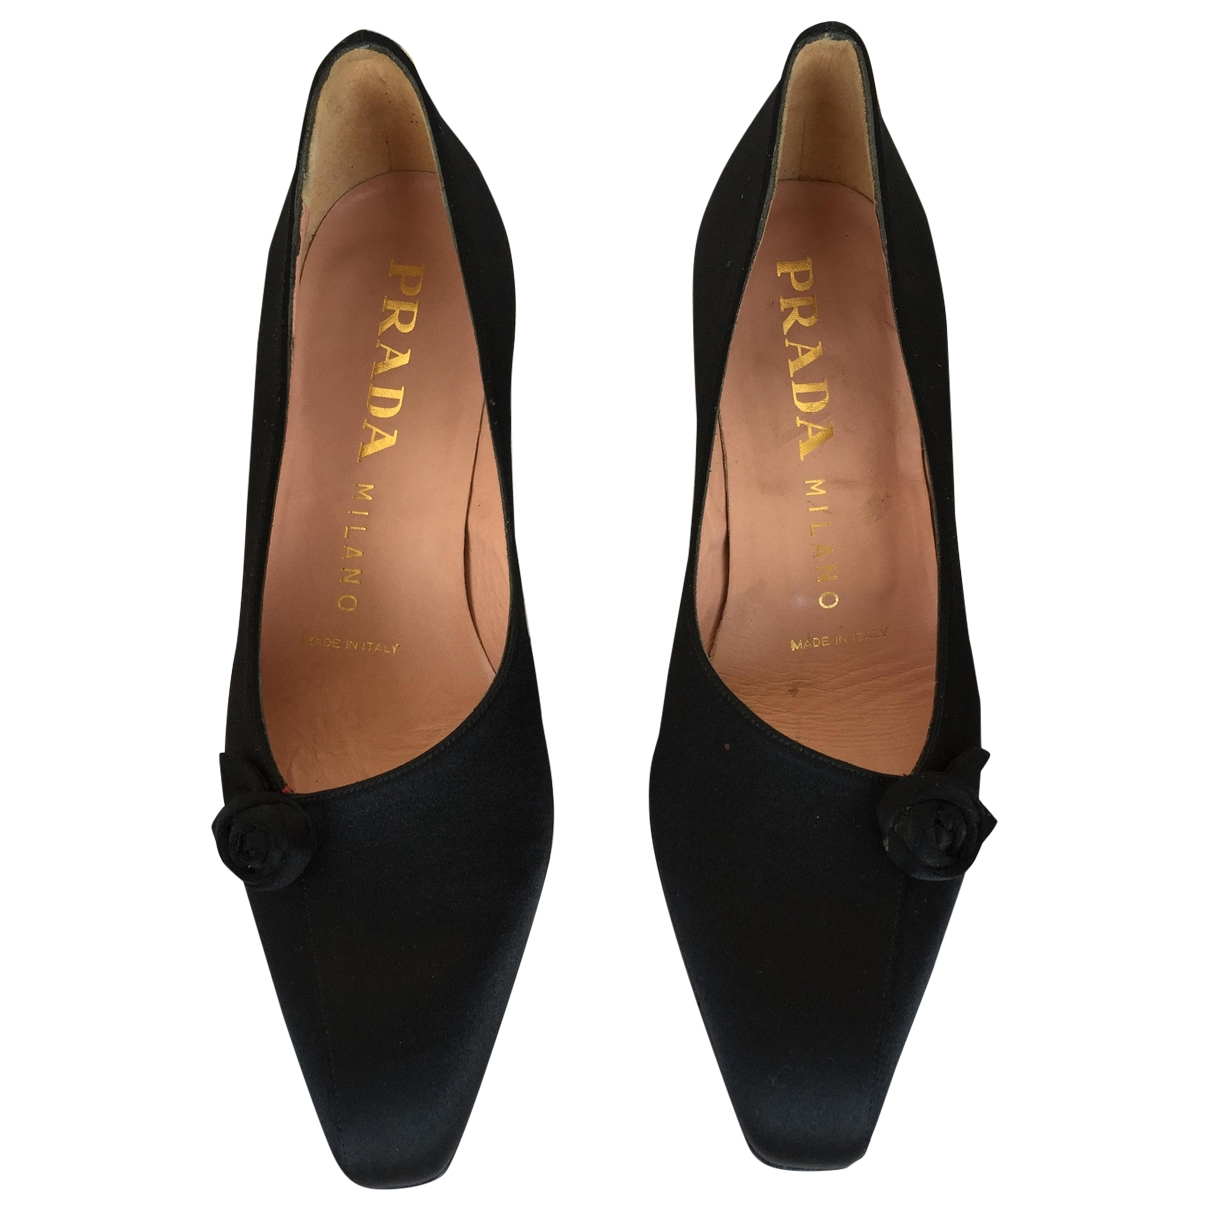 Prada \N Pumps in  Schwarz Leinen